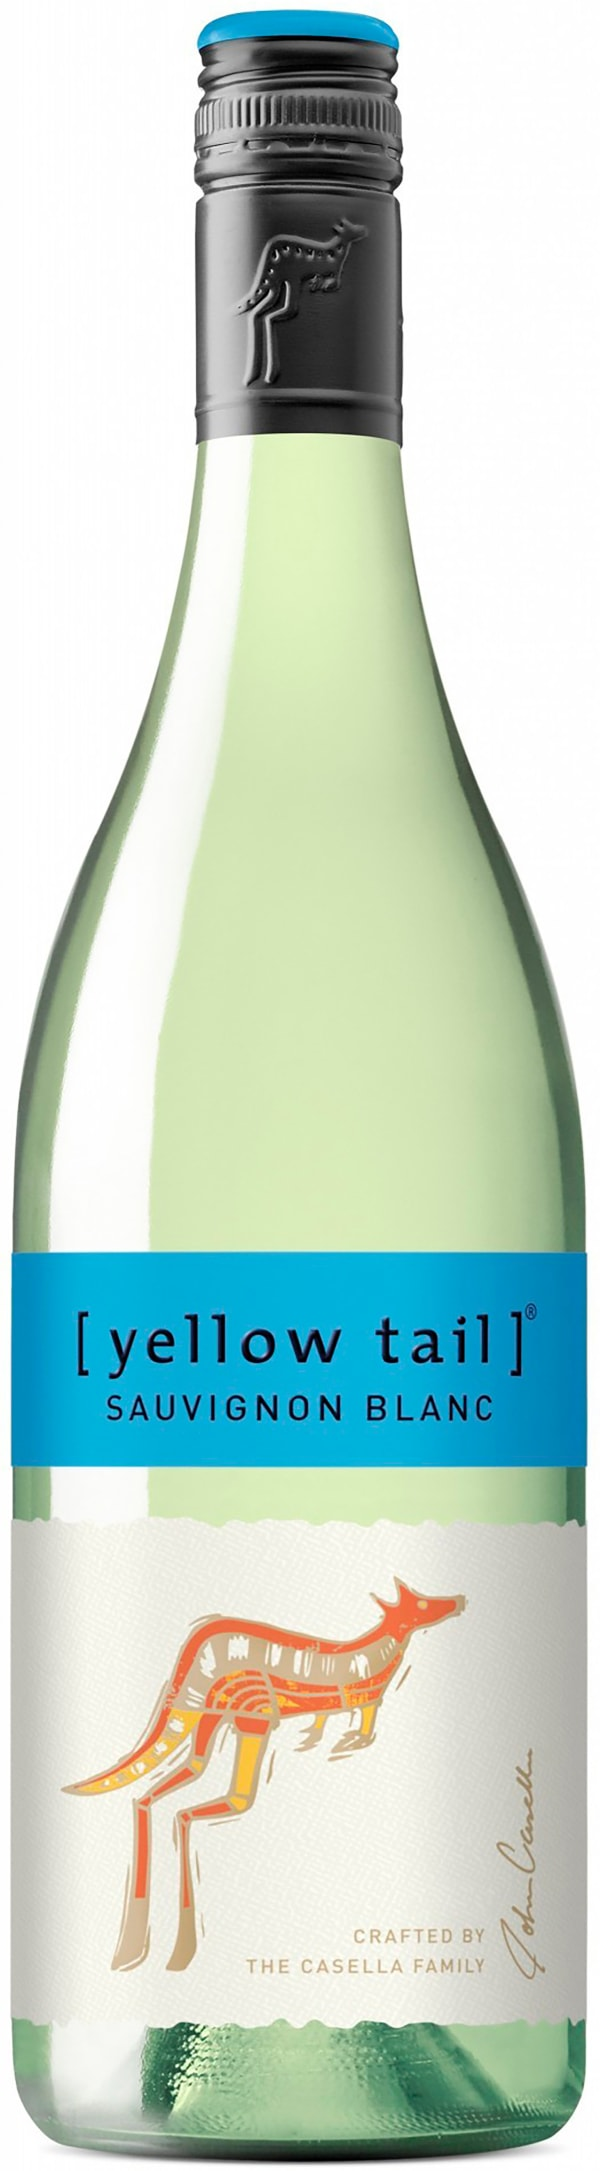 Yellow Tail Sauvignon Blanc 2018